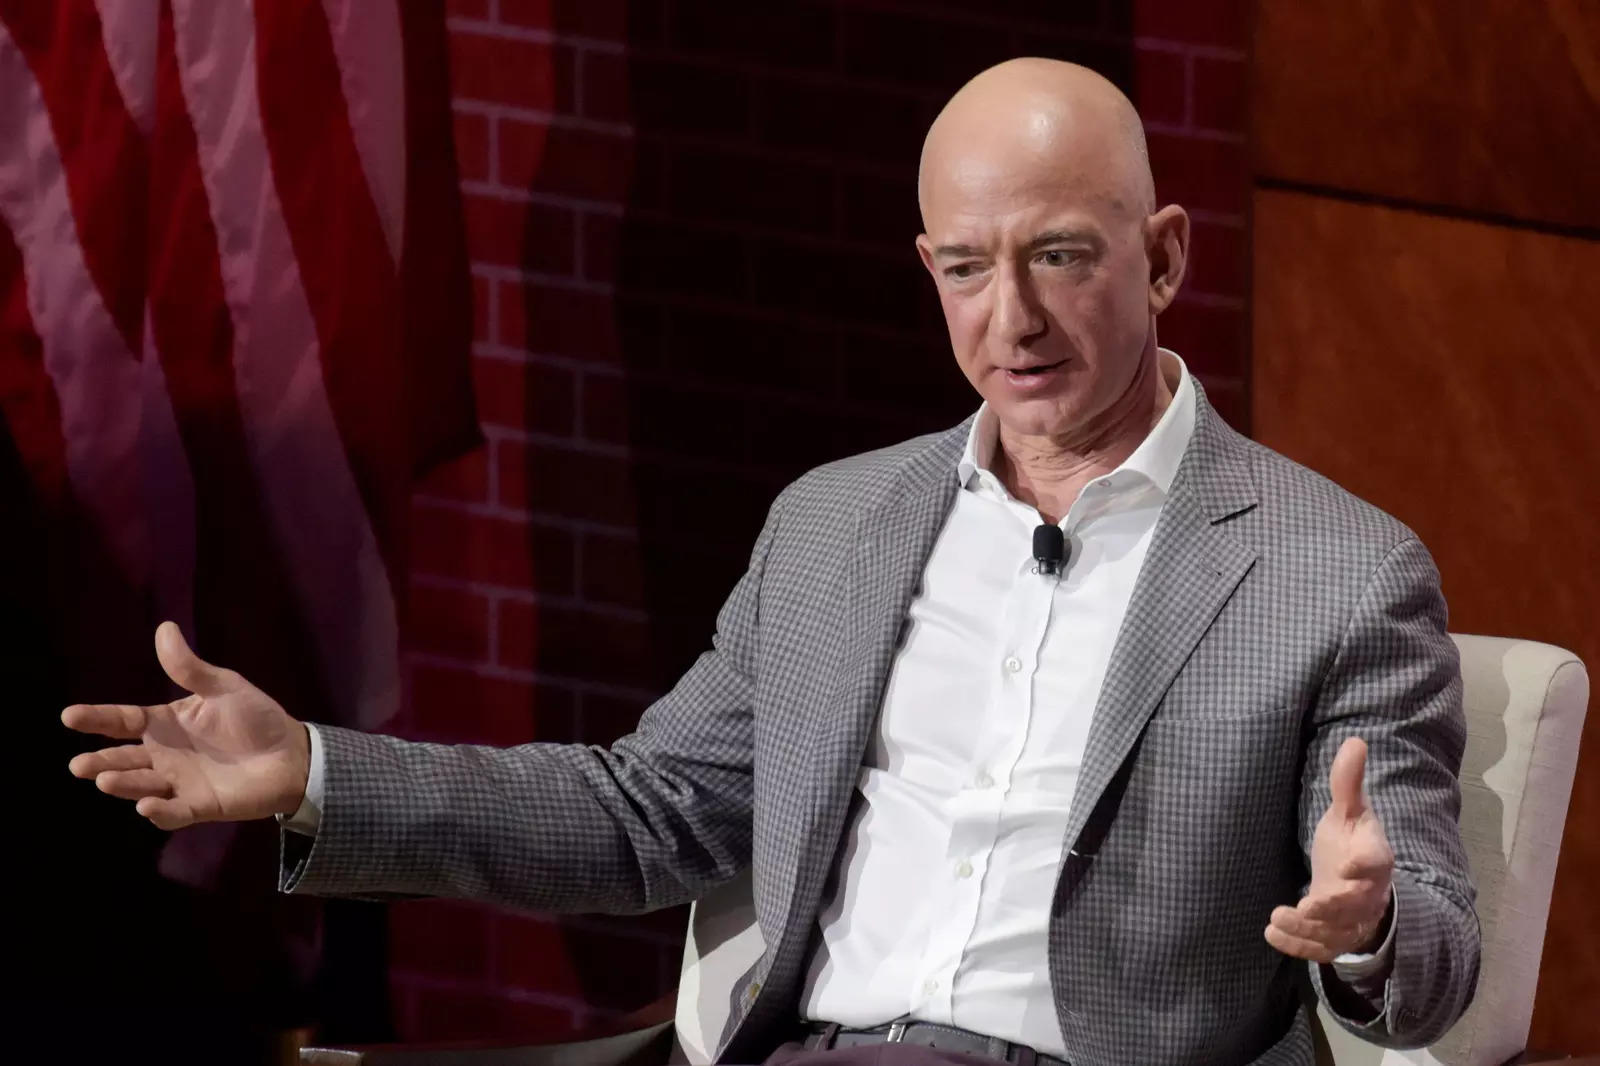 Jeff Bezos is out as Amazon CEO. But is this the end of his ominous question-mark emails?